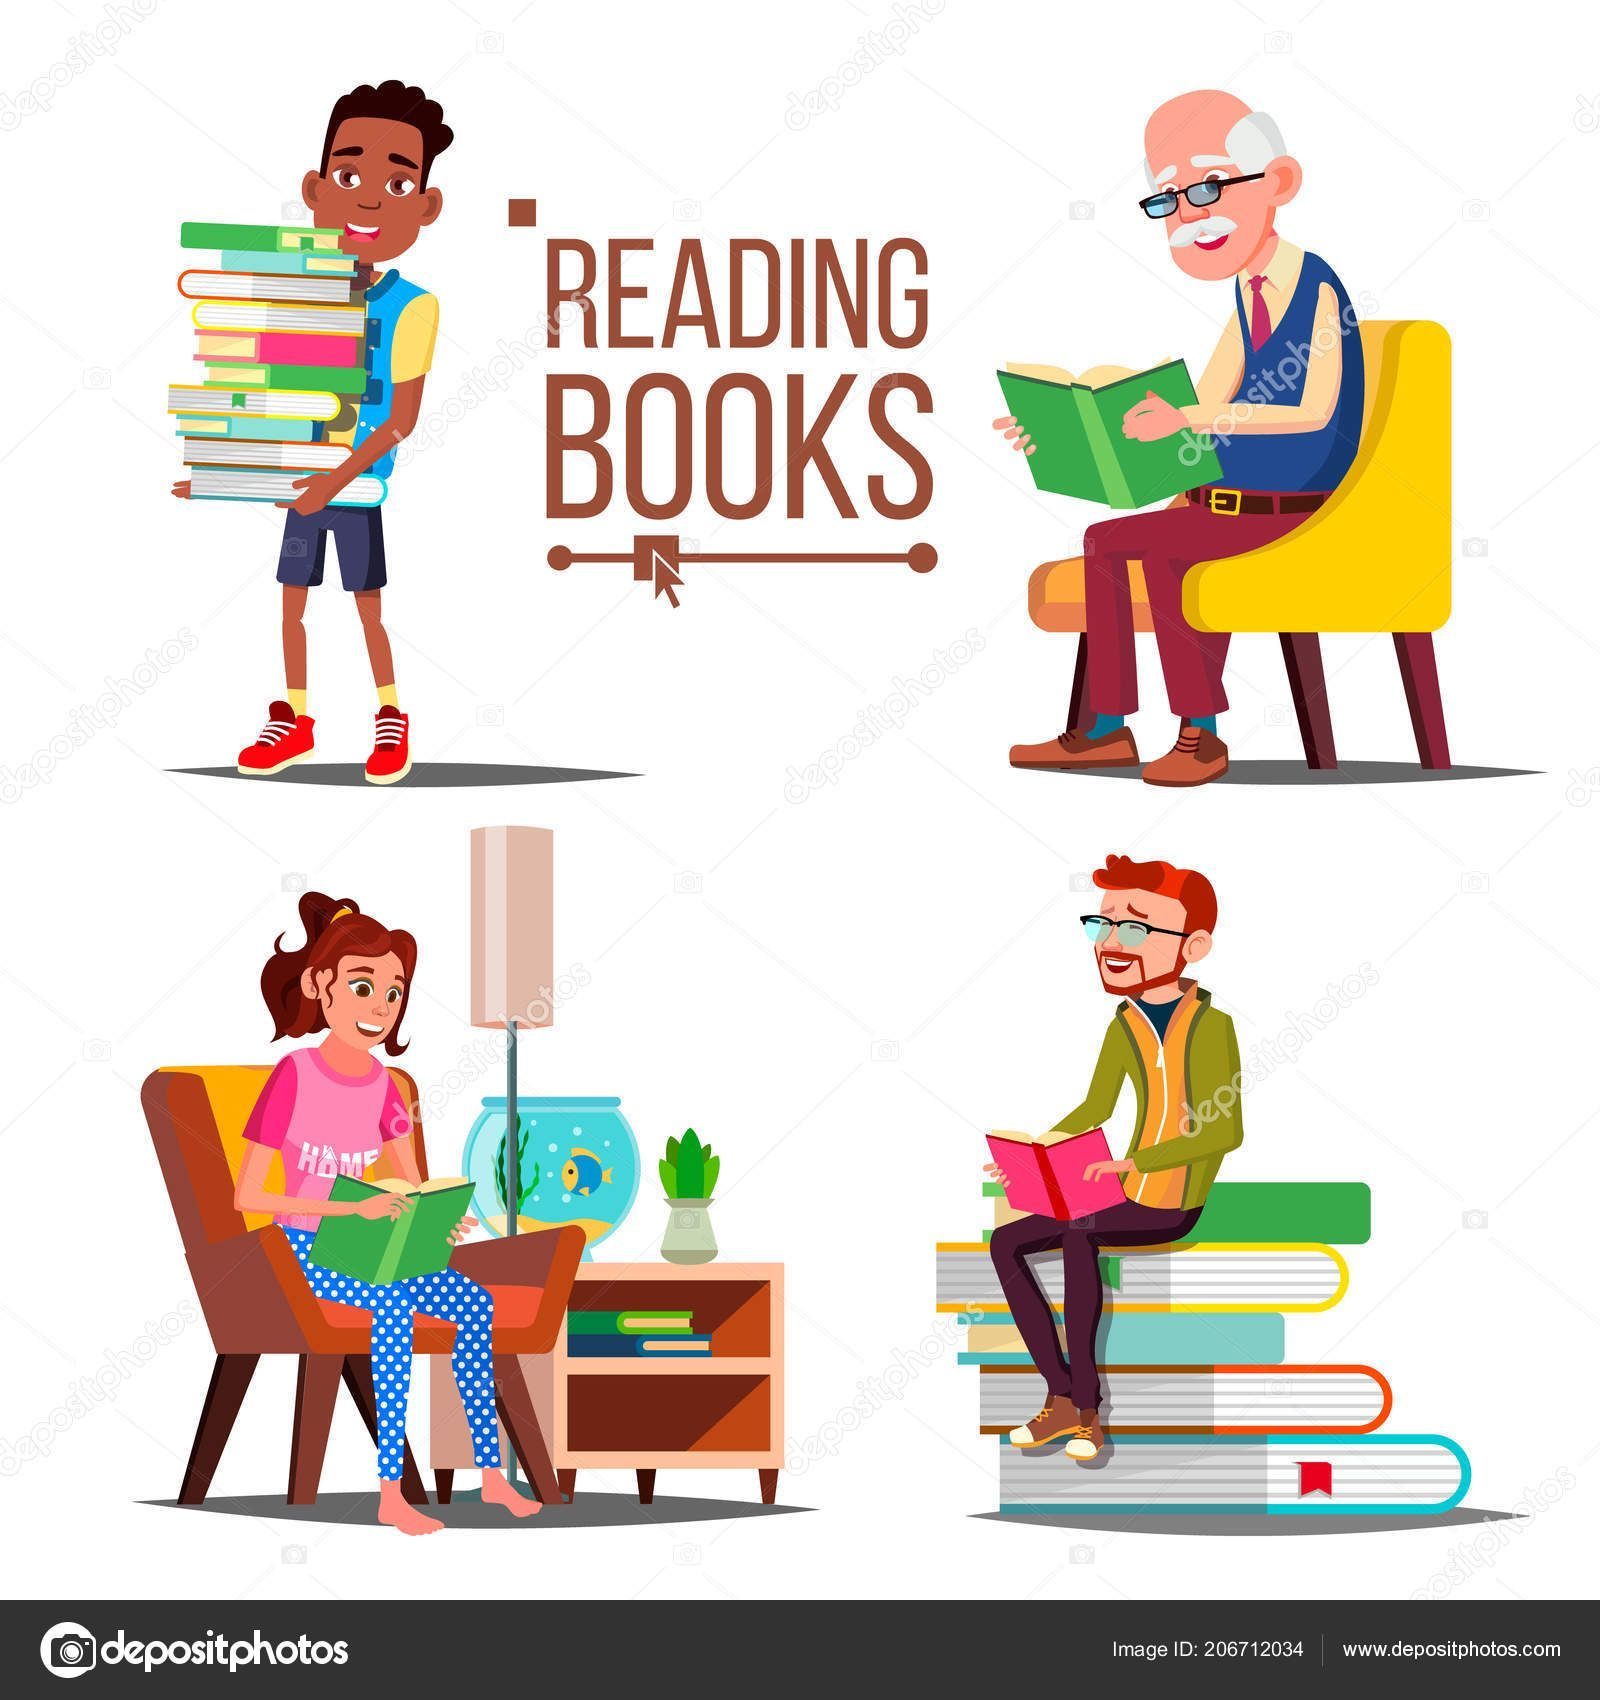 People Reading Books Vector Big Stack Of Books Education Paper